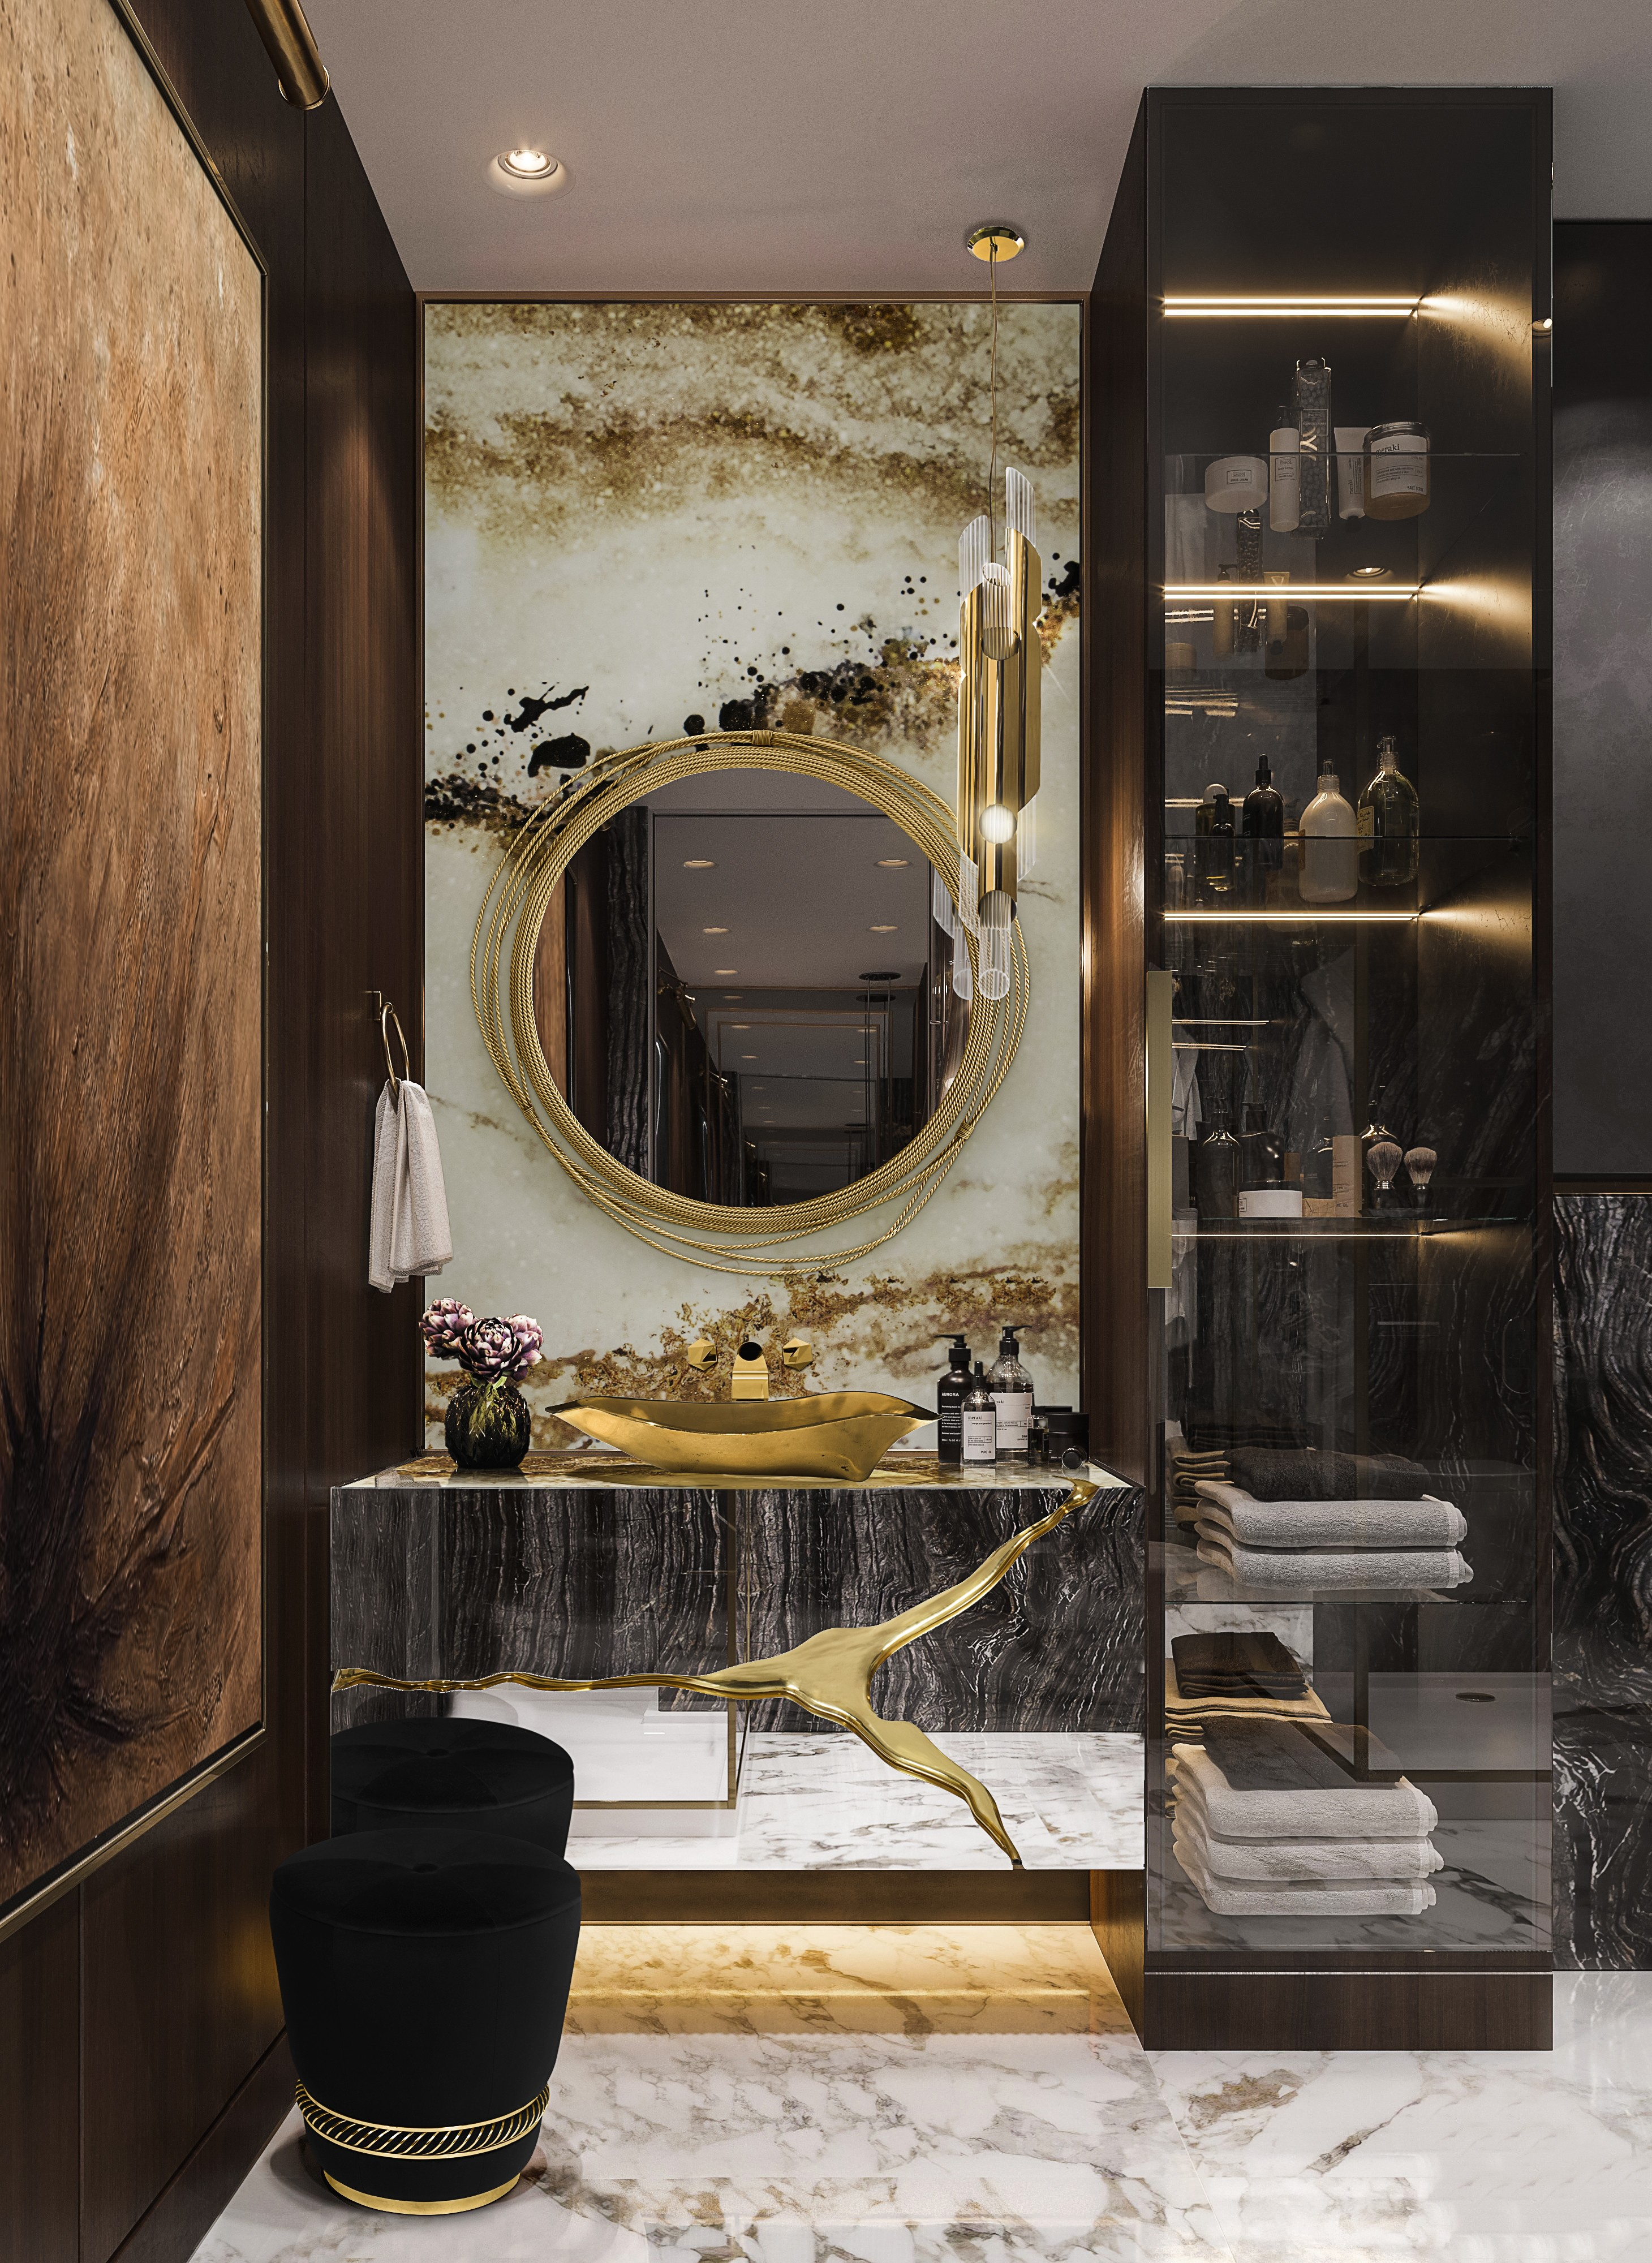 Iconic Mirrors To Engage With Luxury Interiors